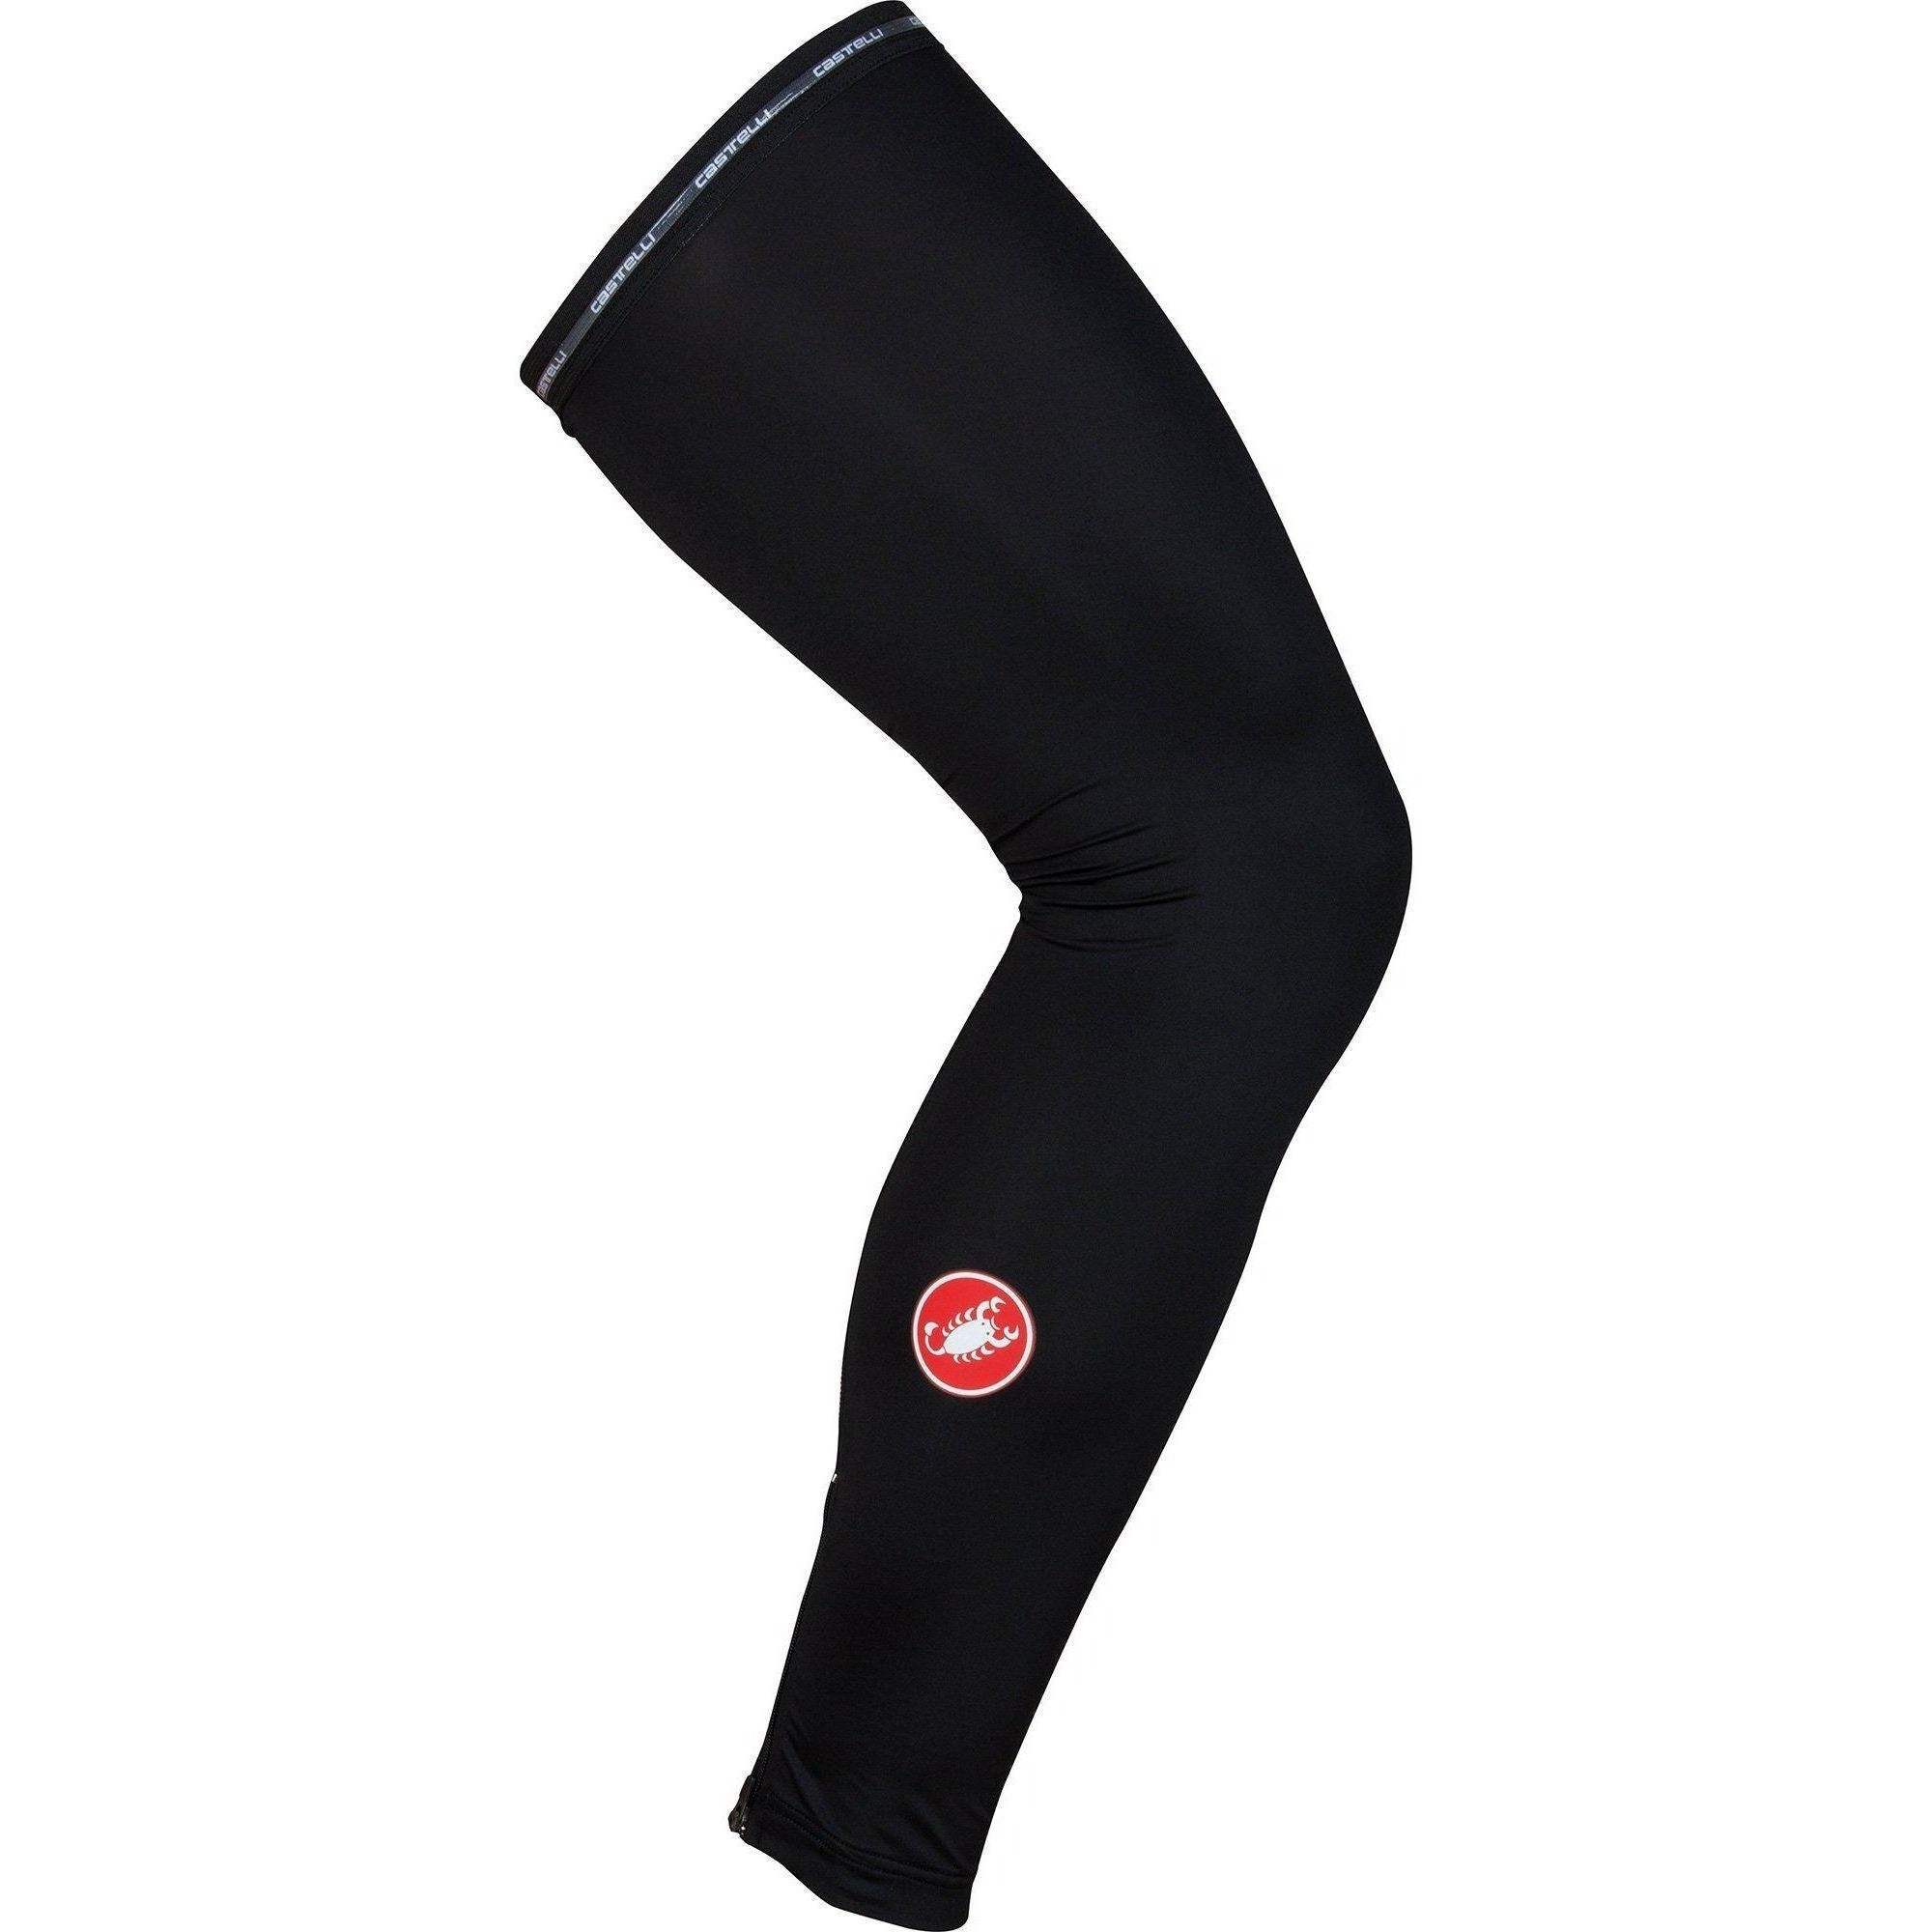 Warmers - Castelli UPF 50+ Leg Sleeves